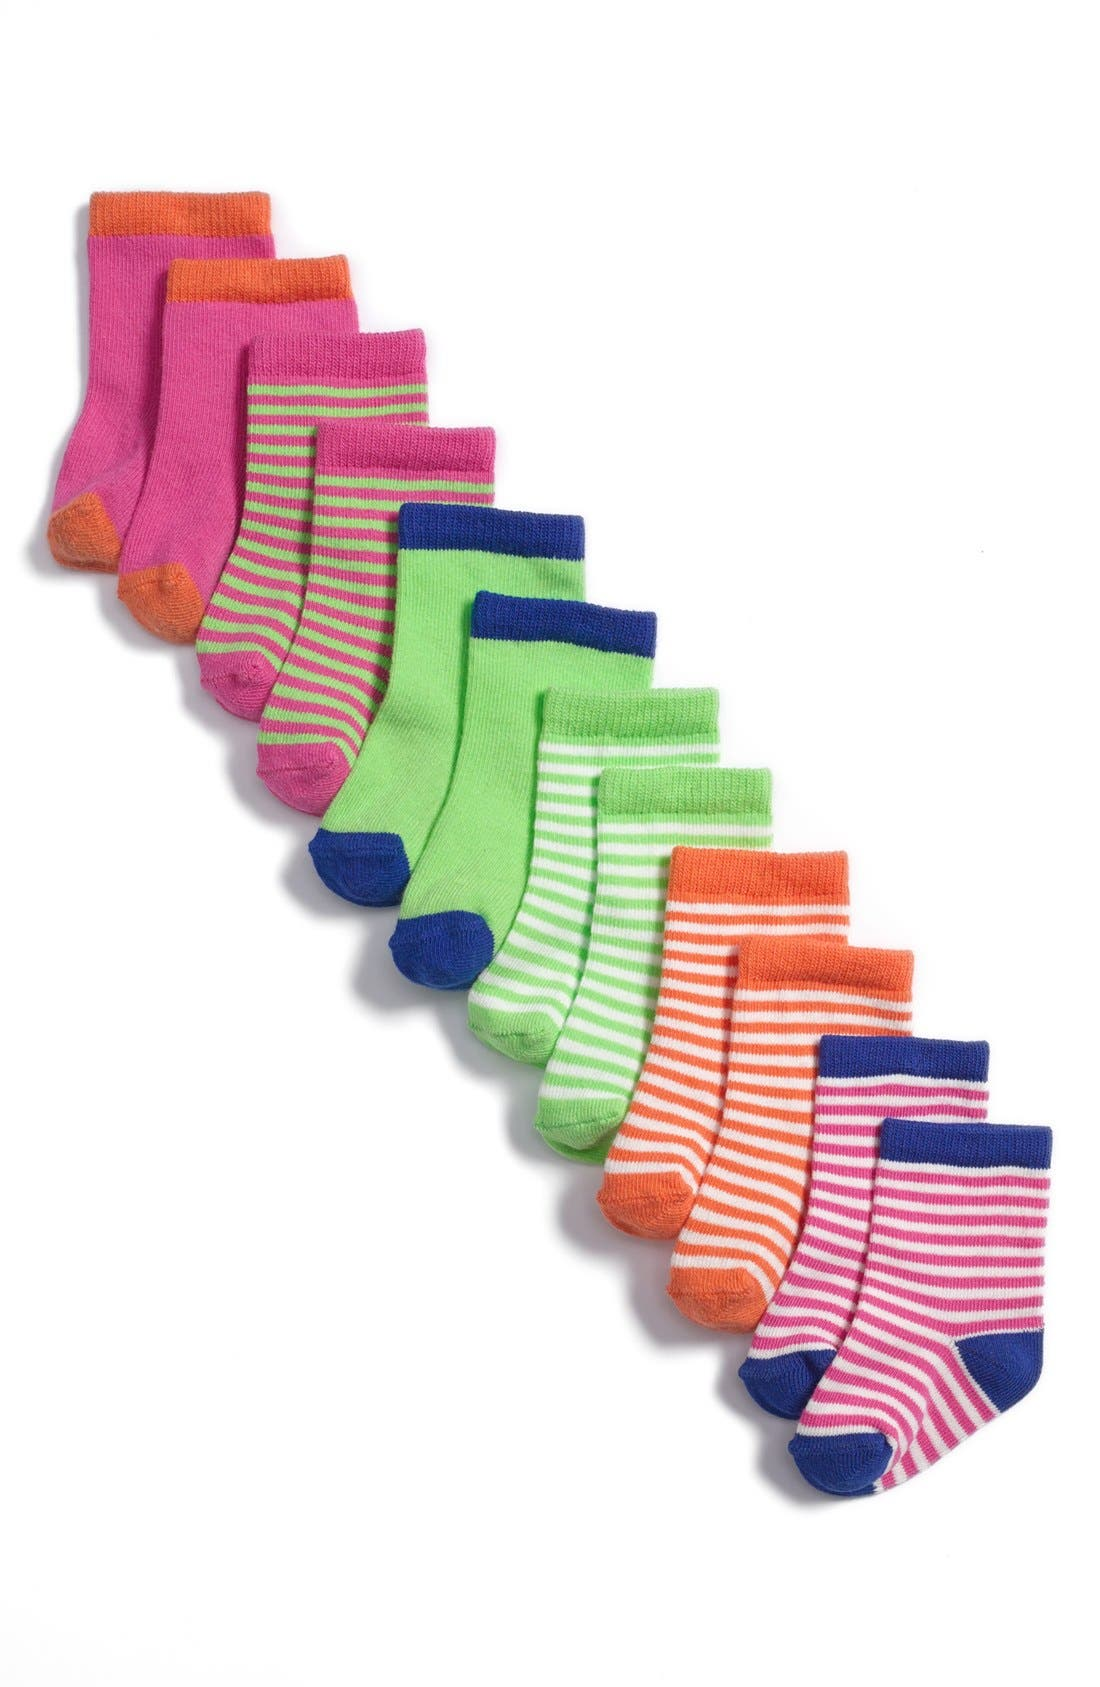 Main Image - Stem Baby Patterned Socks (6-Pack) (Baby Girls)